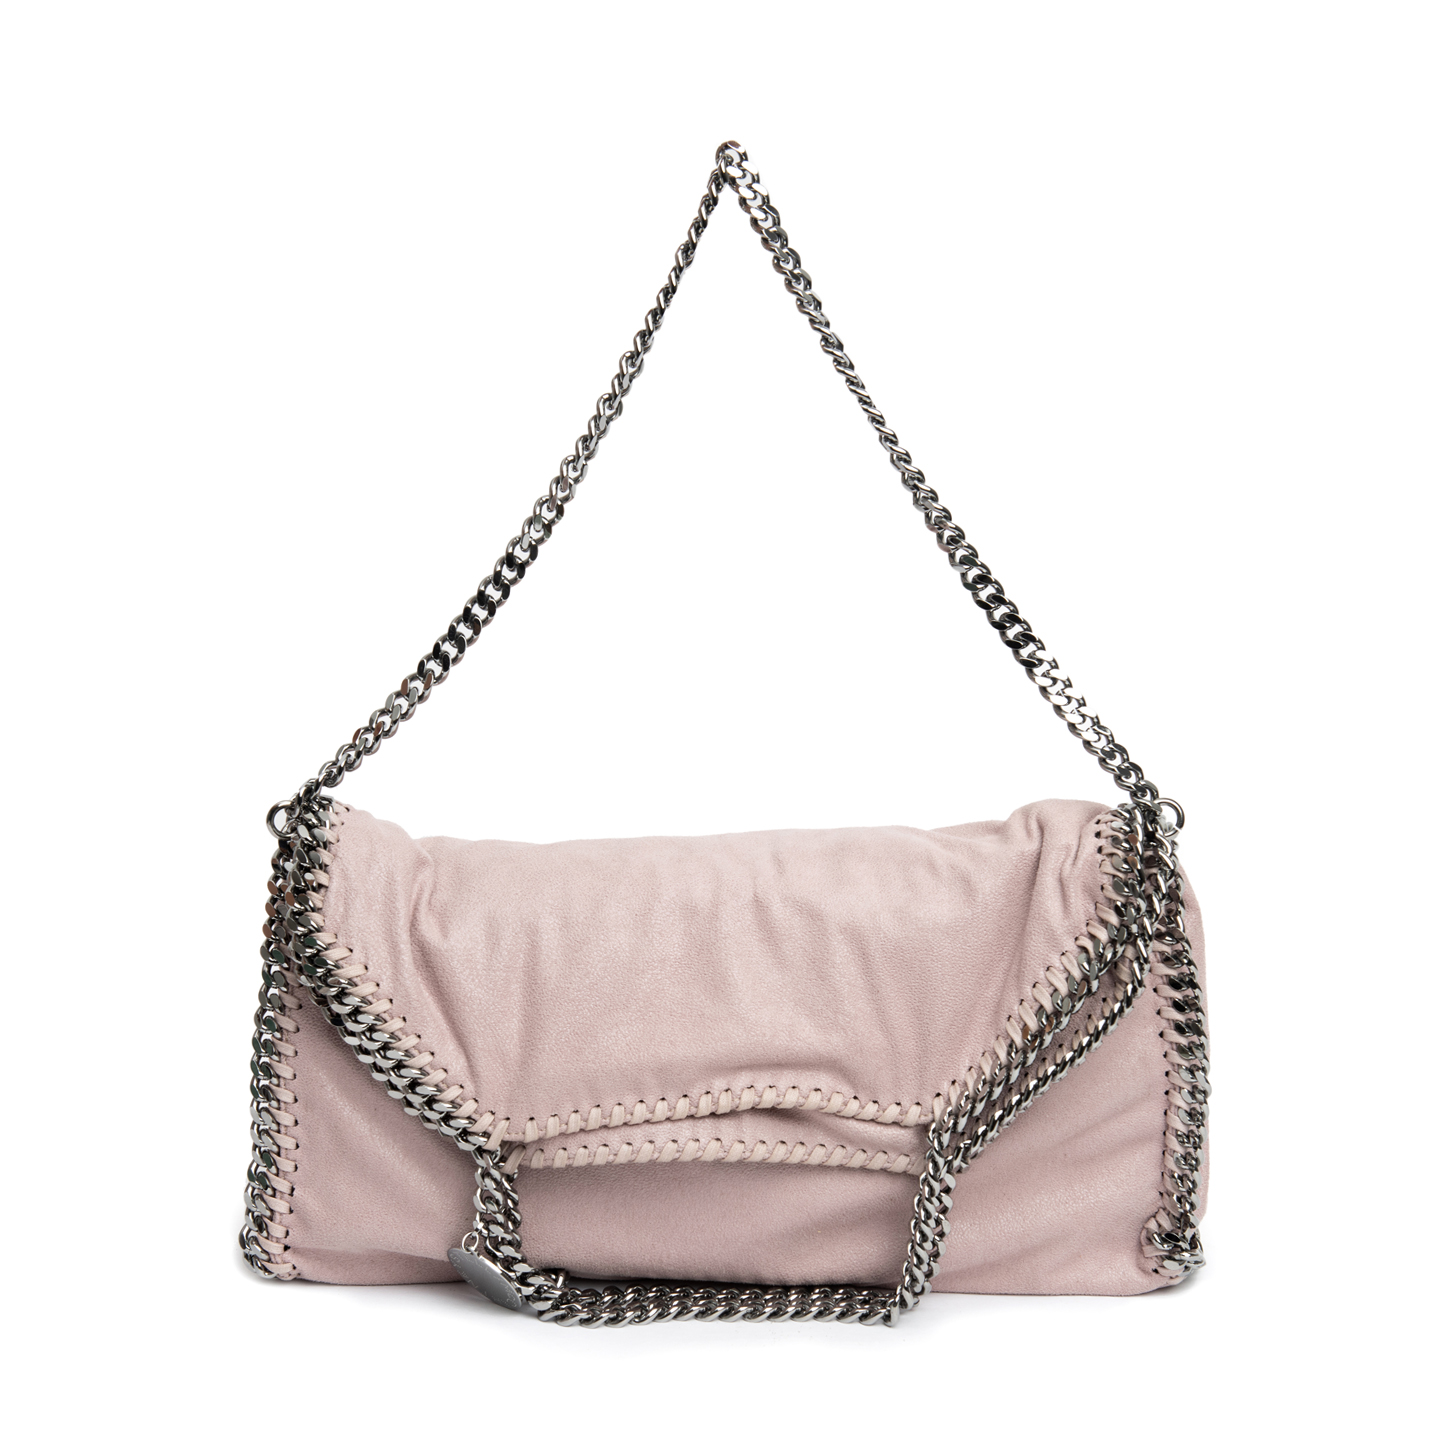 Stella McCartney Pink Faux Leather Falabella Fold-over